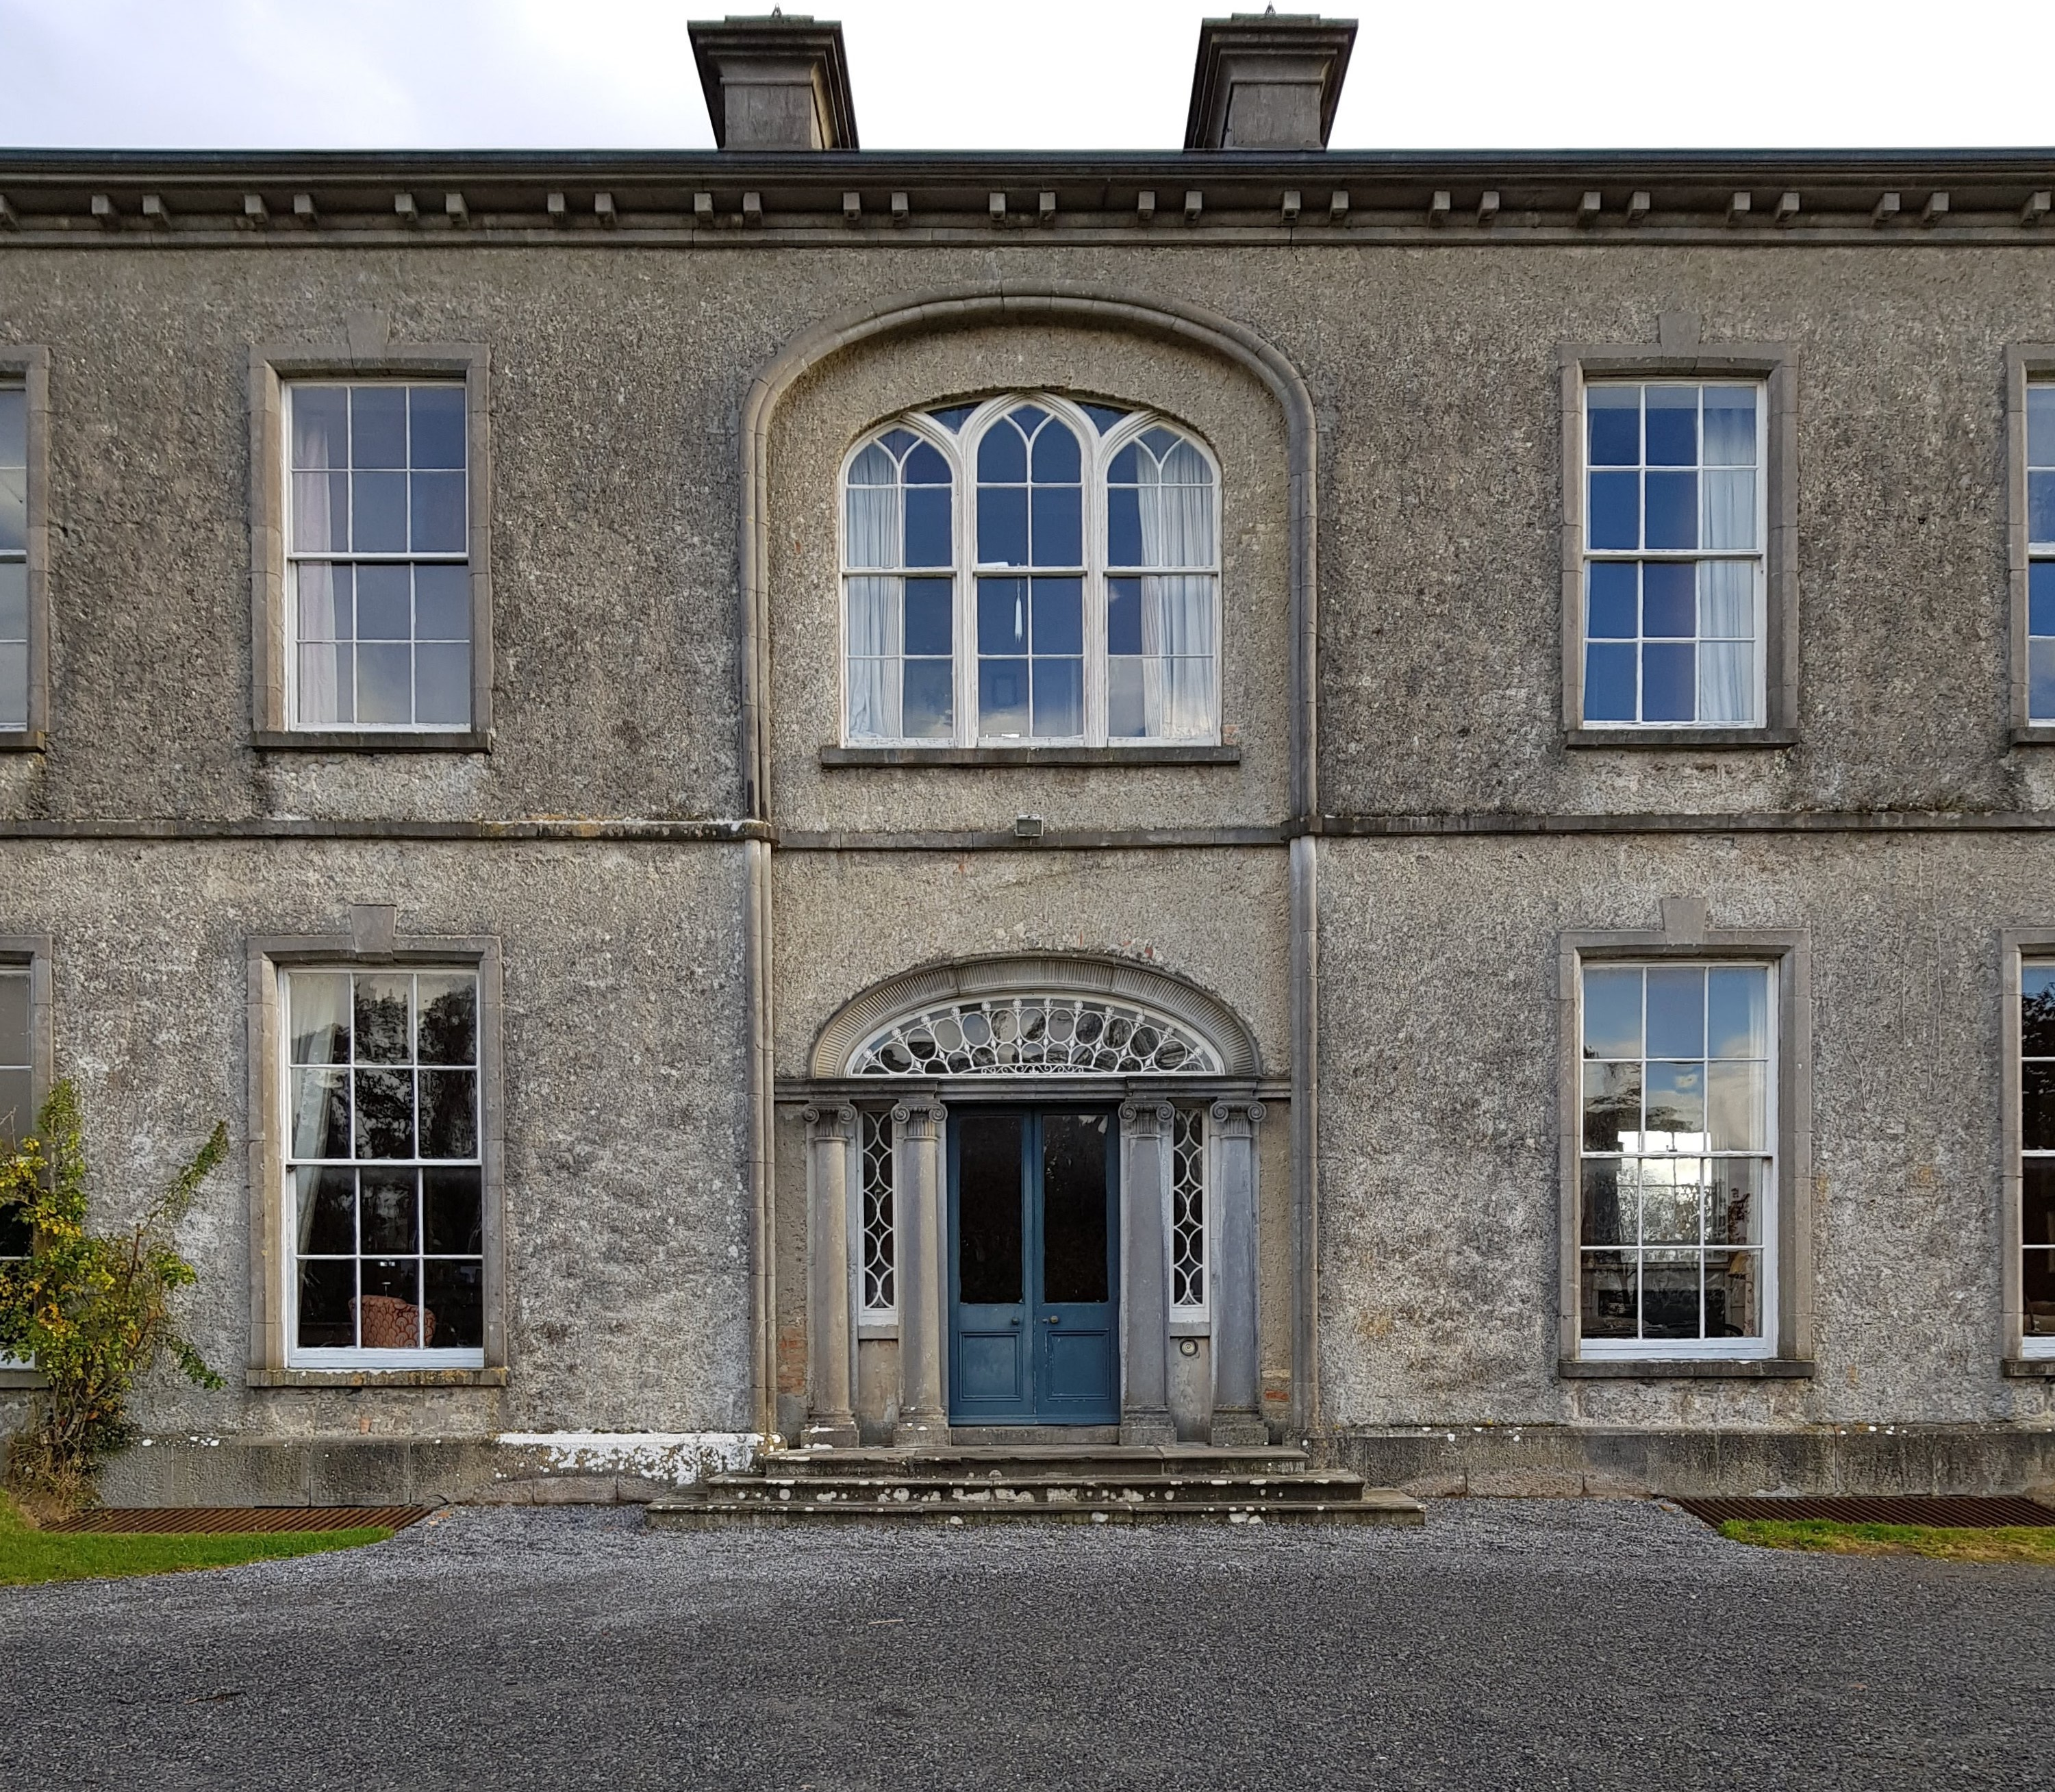 St Stanislaus College, Tullabeg, Offaly - Offaly Archives